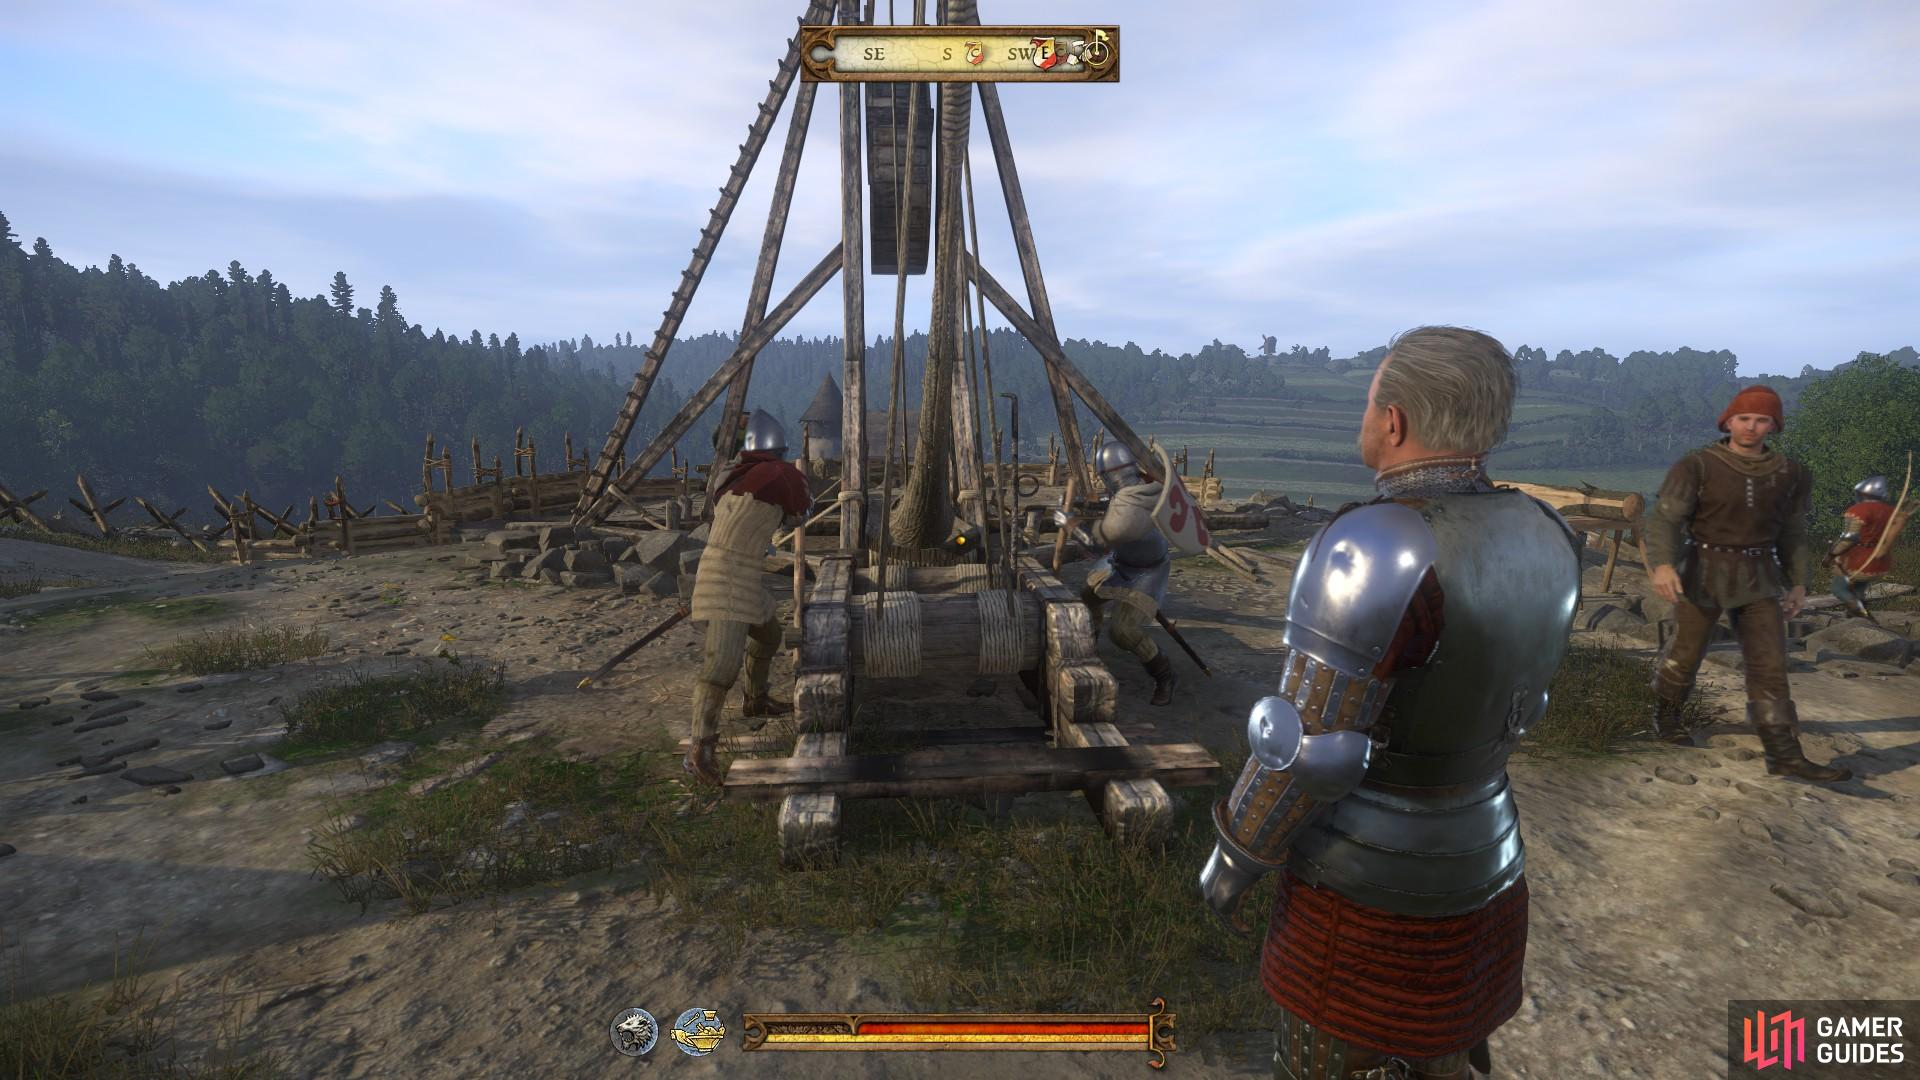 Go to Sir Robard and wait with him as the men load the trebuchet.